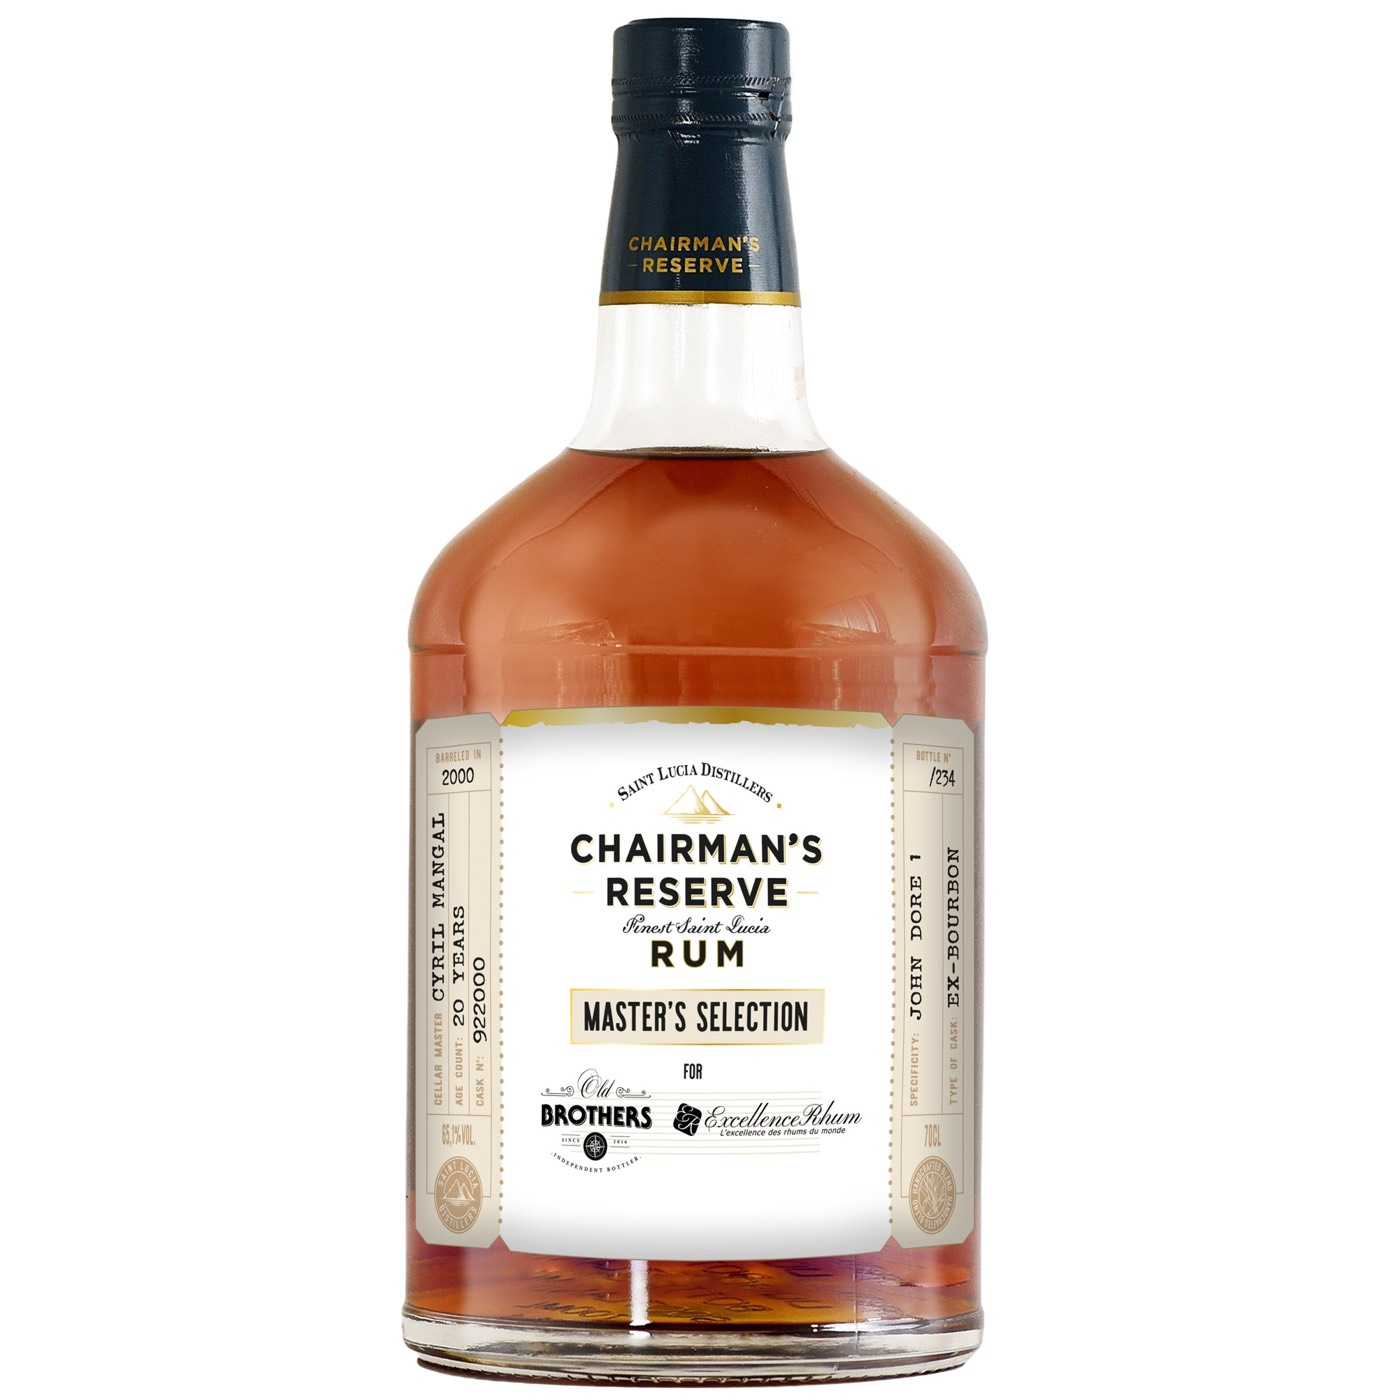 Bottle image of Chairman's Reserve Master's Selection